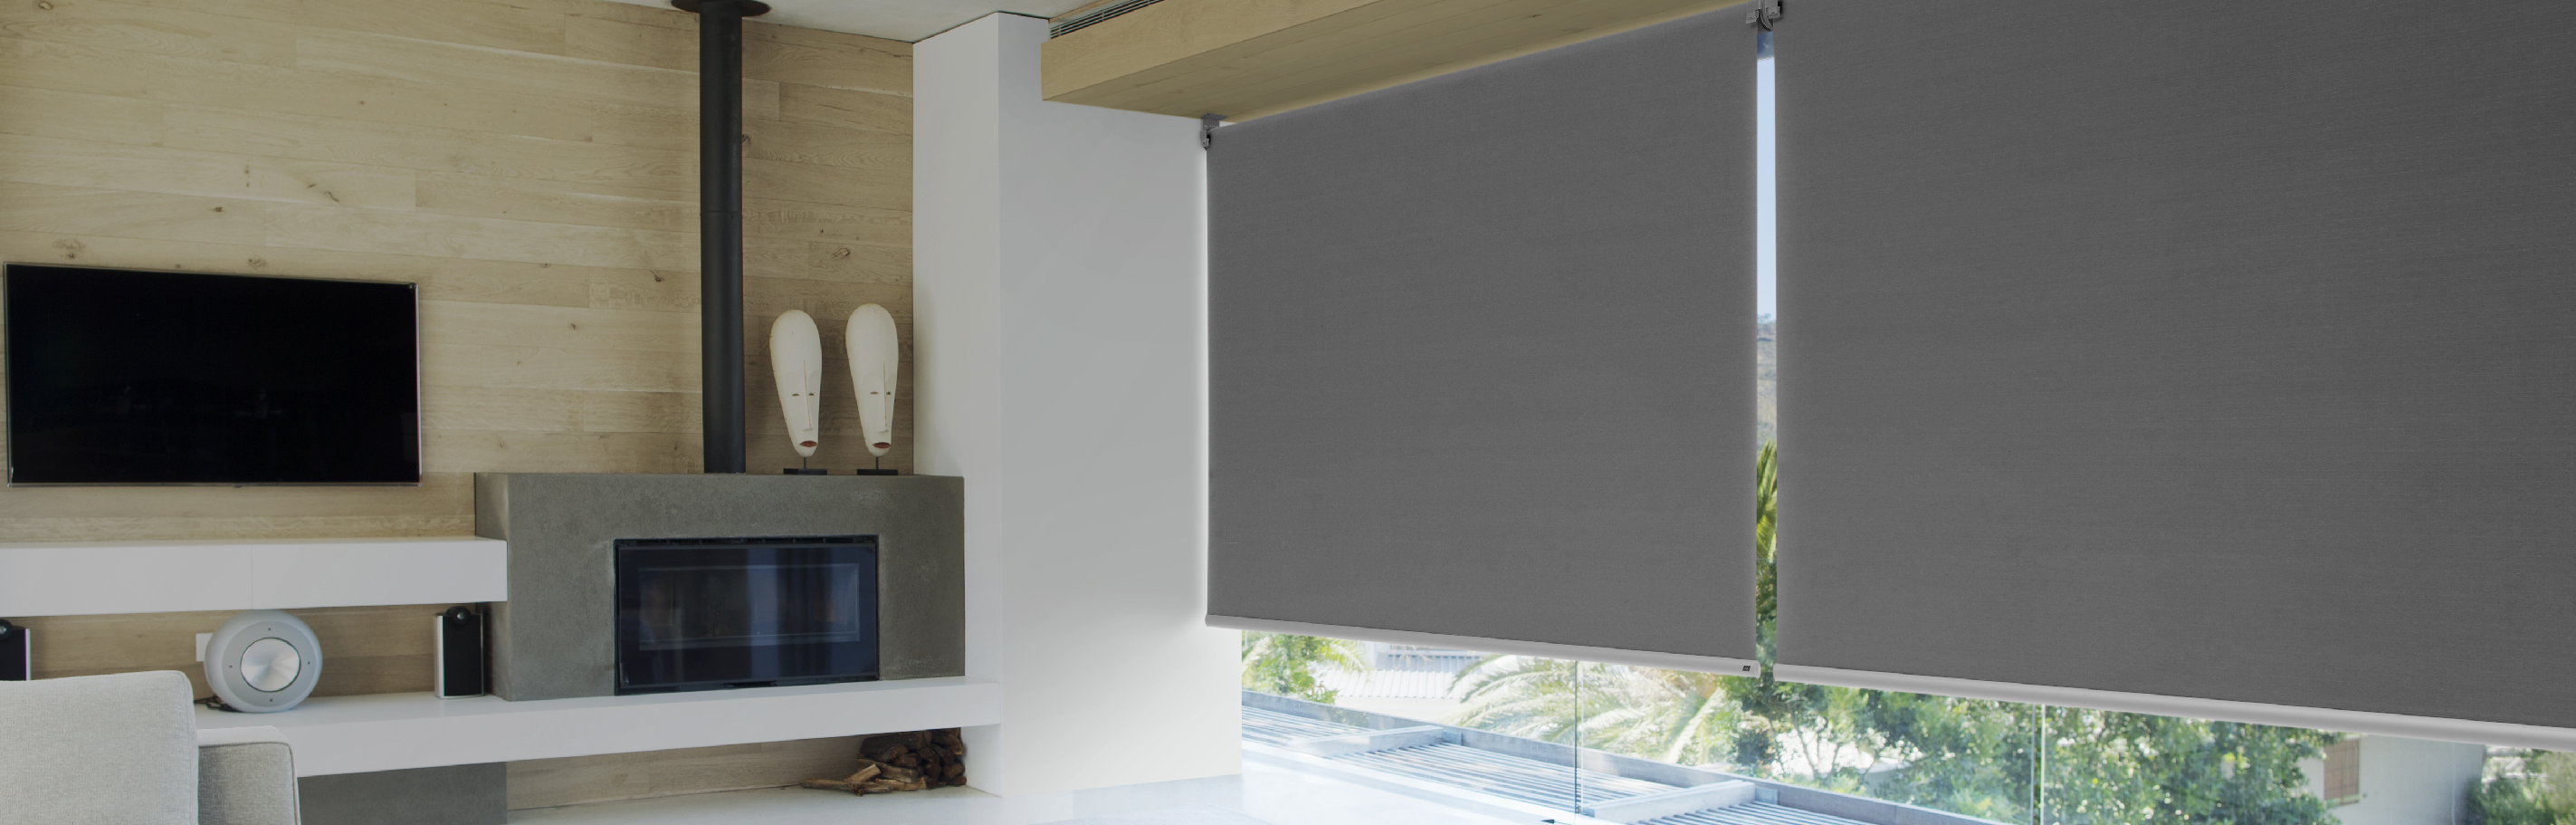 Luxaflex Showcase - Products - Softshades and Fabrics - Roller Blinds Bottom